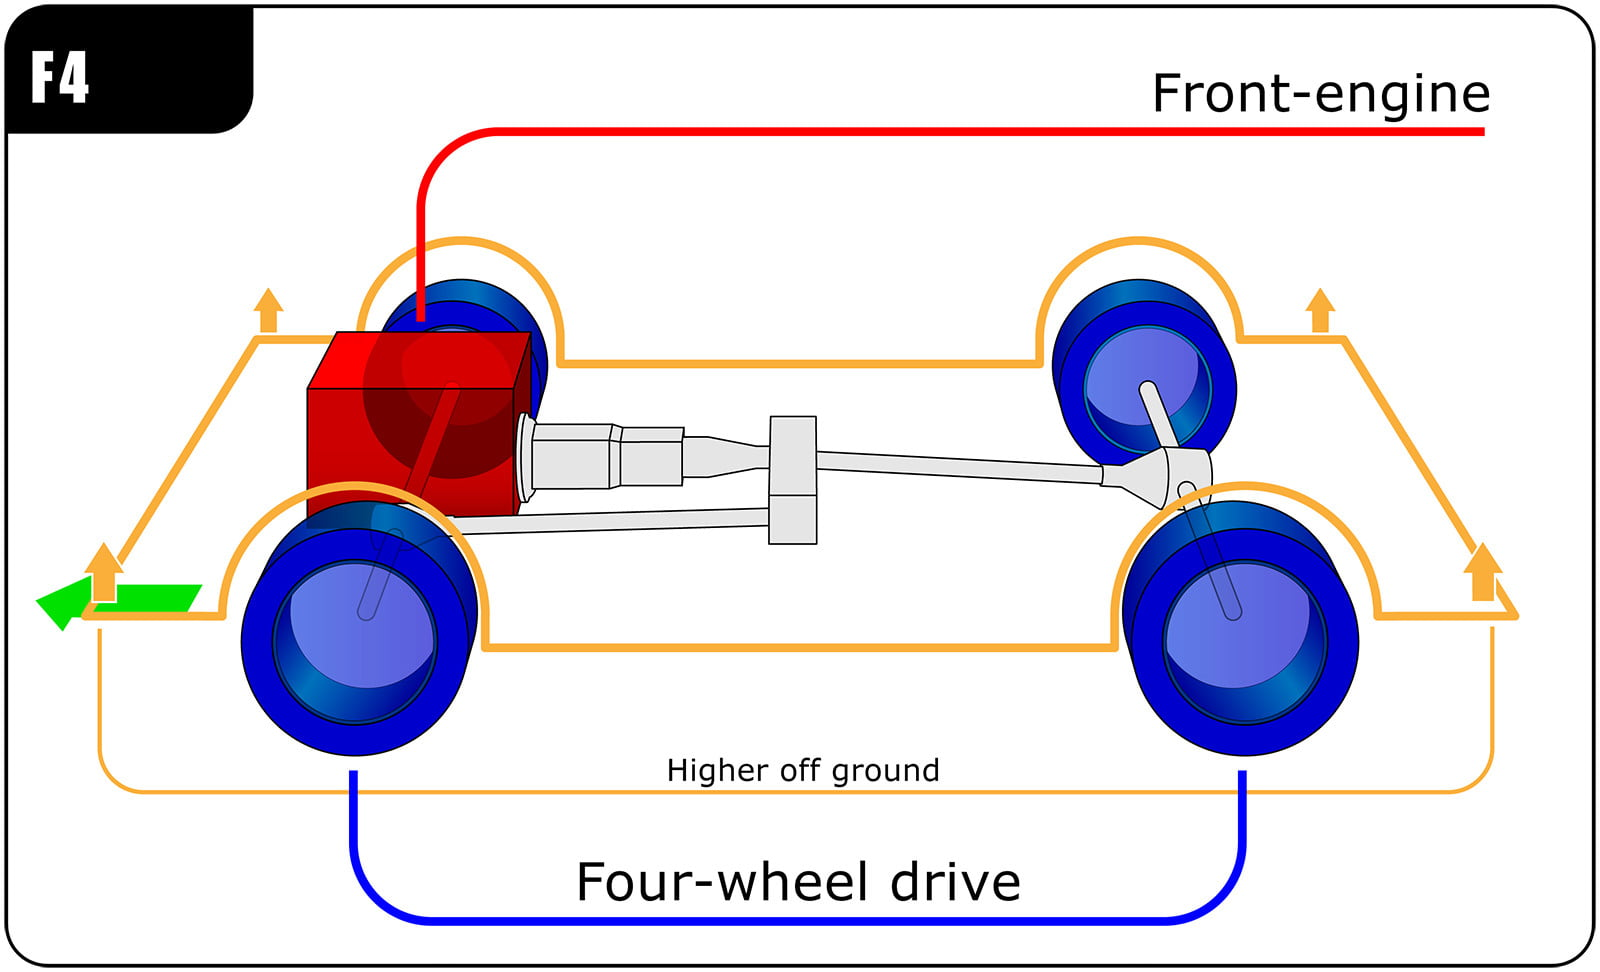 fwd vs awd rwd front engine 4wd copy wikicommons  all-wheel drive